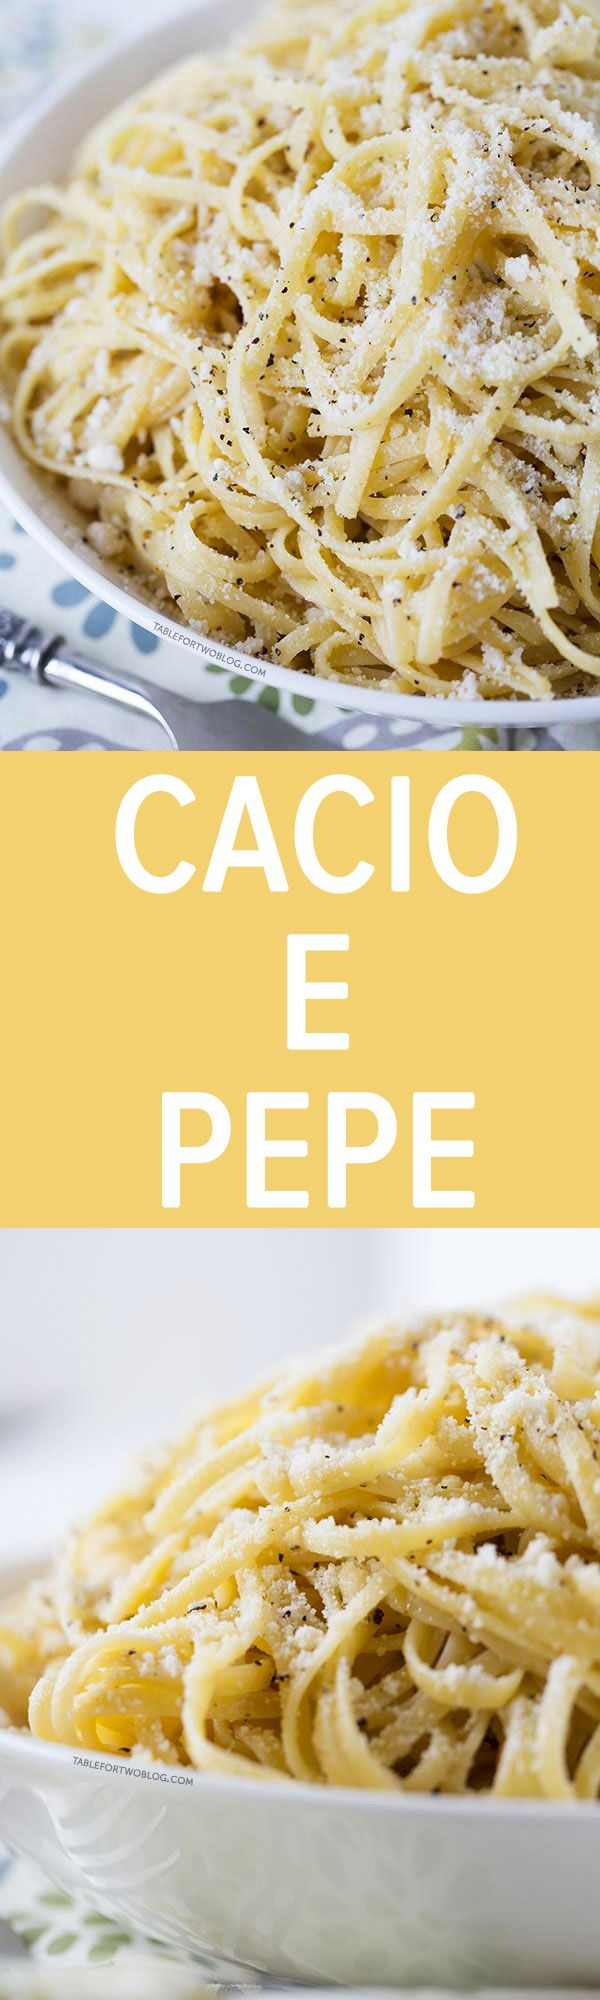 A classic Italian pasta dish with simple ingredients that will always be a crowd-pleaser. Cacio e pepe is one of our favorite pasta dishes to make!